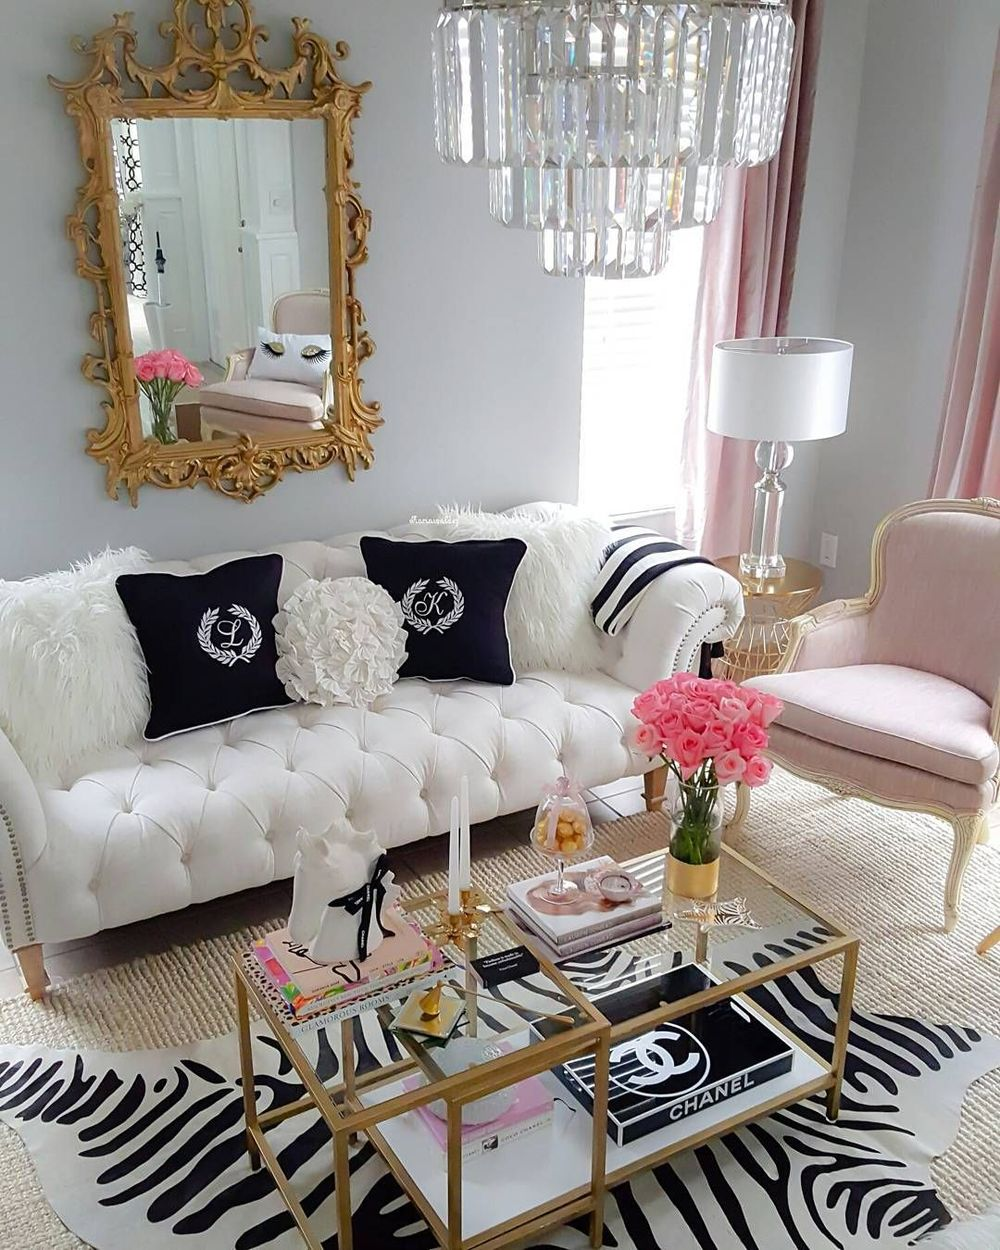 Glam tufted sofa and gold mirror